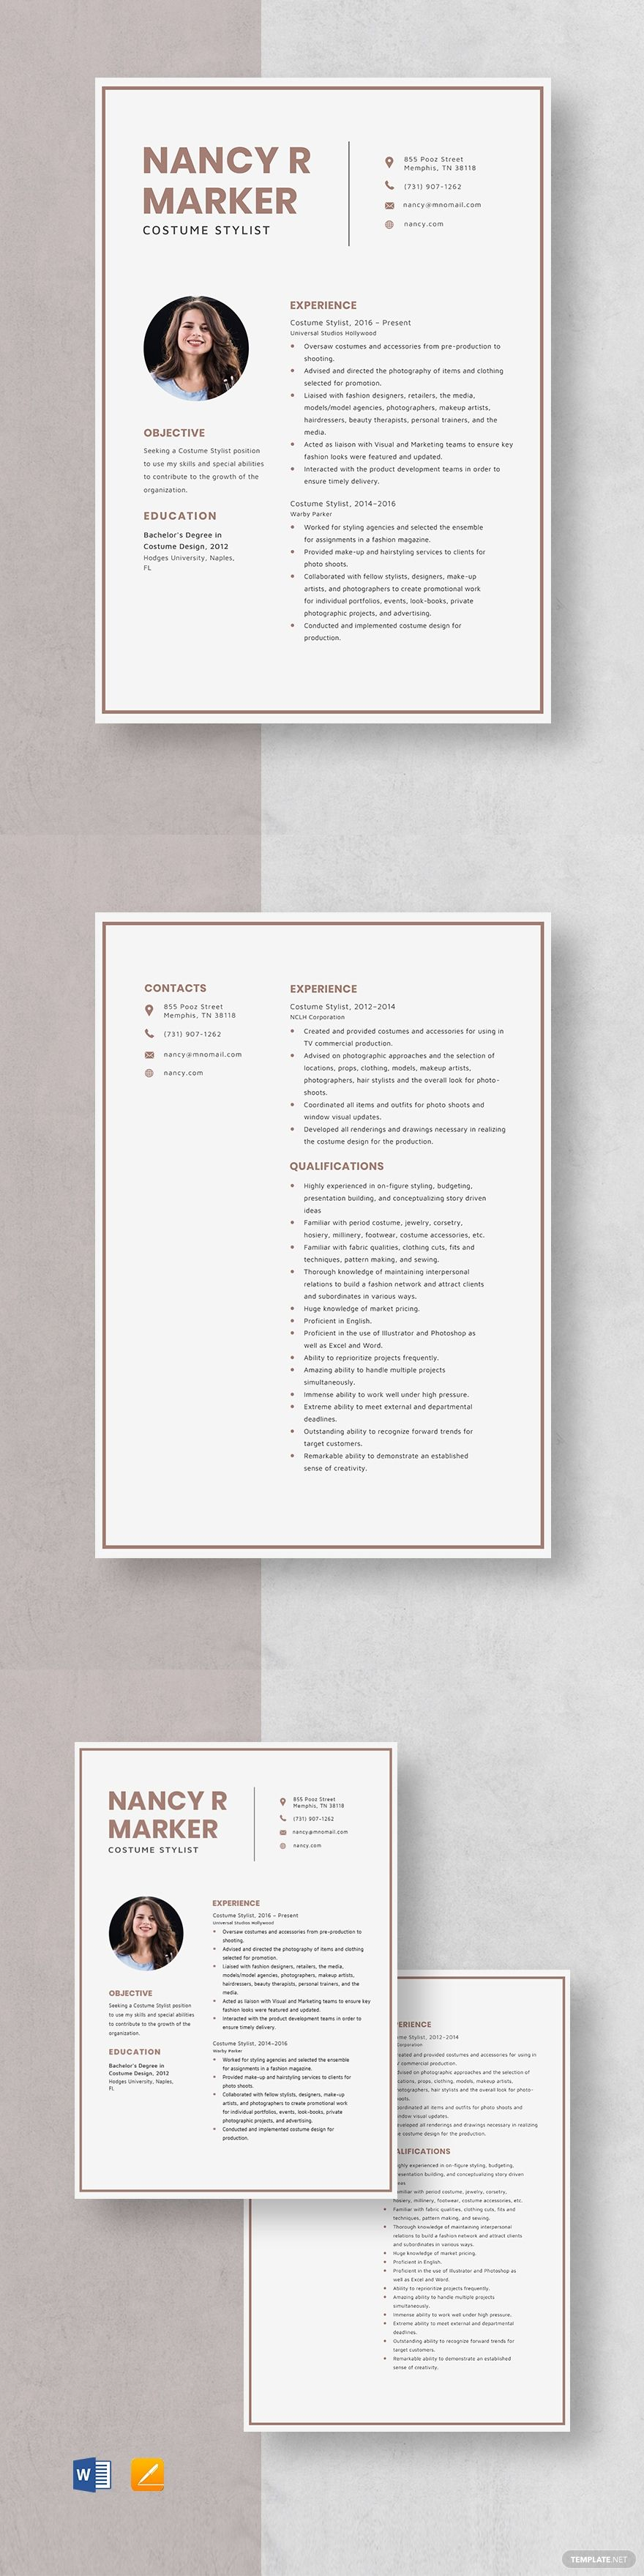 Costume stylist resume template in 2020 executive resume